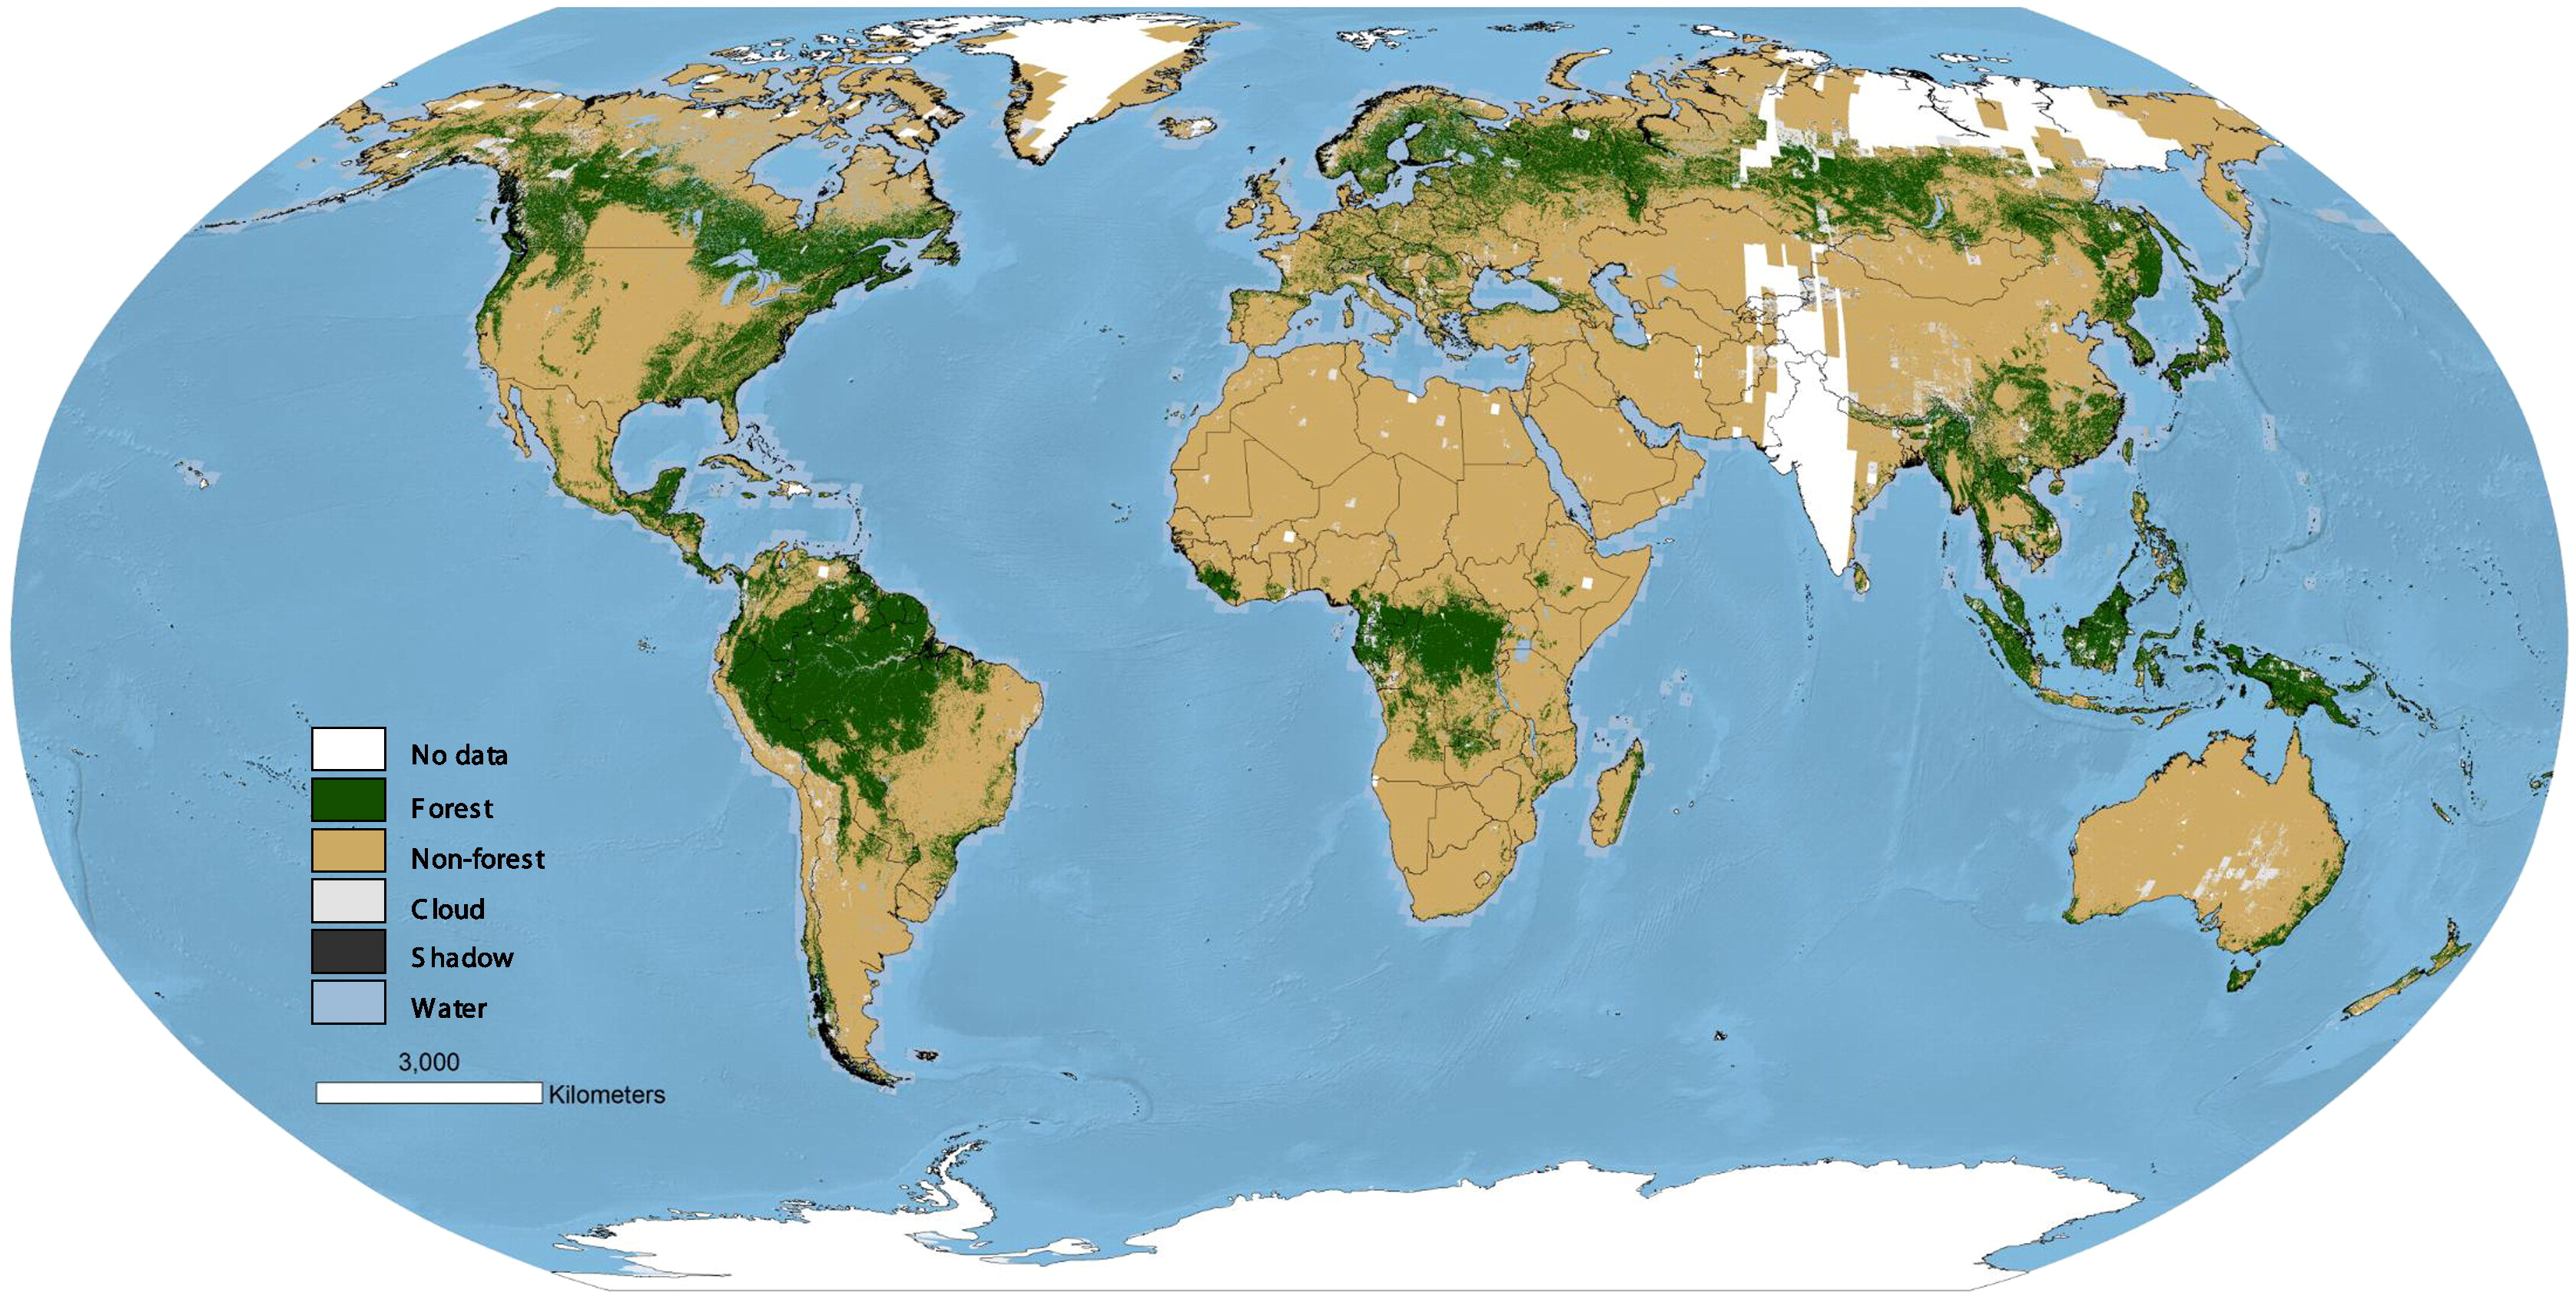 Researchers create global map of world's forests circa 1990 on usa map, topographic map, regional map, canada map, google map, mappa mundi, antarctica map, africa map, china map, asia map, european map, brazil map, thematic map, costa rica map, korea map, united kingdom map, india map, globe map, middle east map, australia map, europe map, travel map, world map,